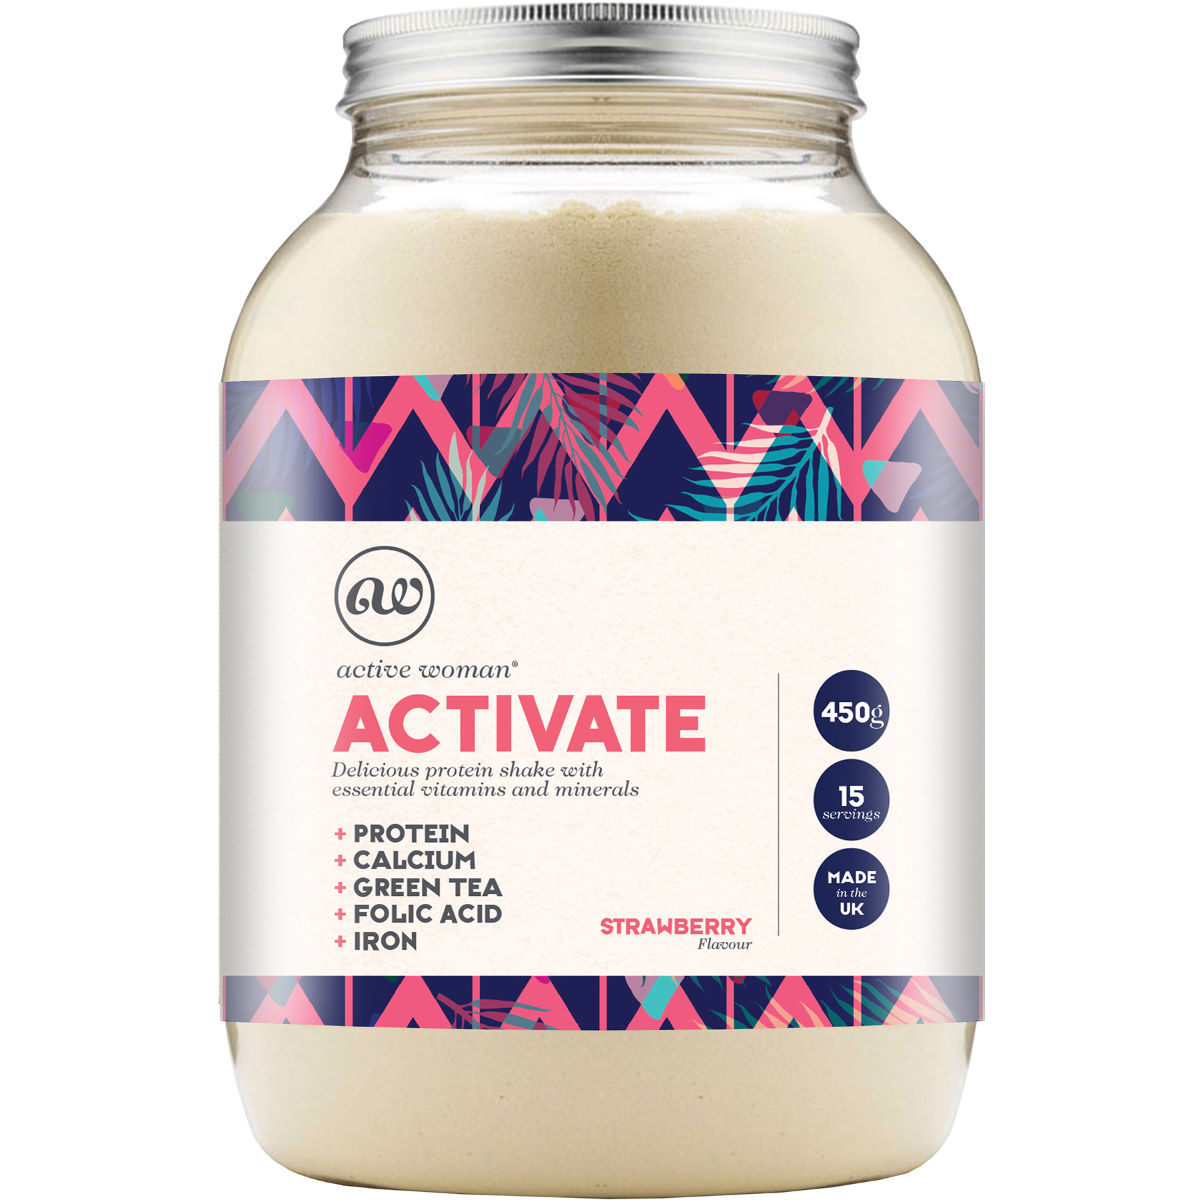 Bio-Synergy Bio-Synergy Active Woman Activate (450g)   Powdered Drinks